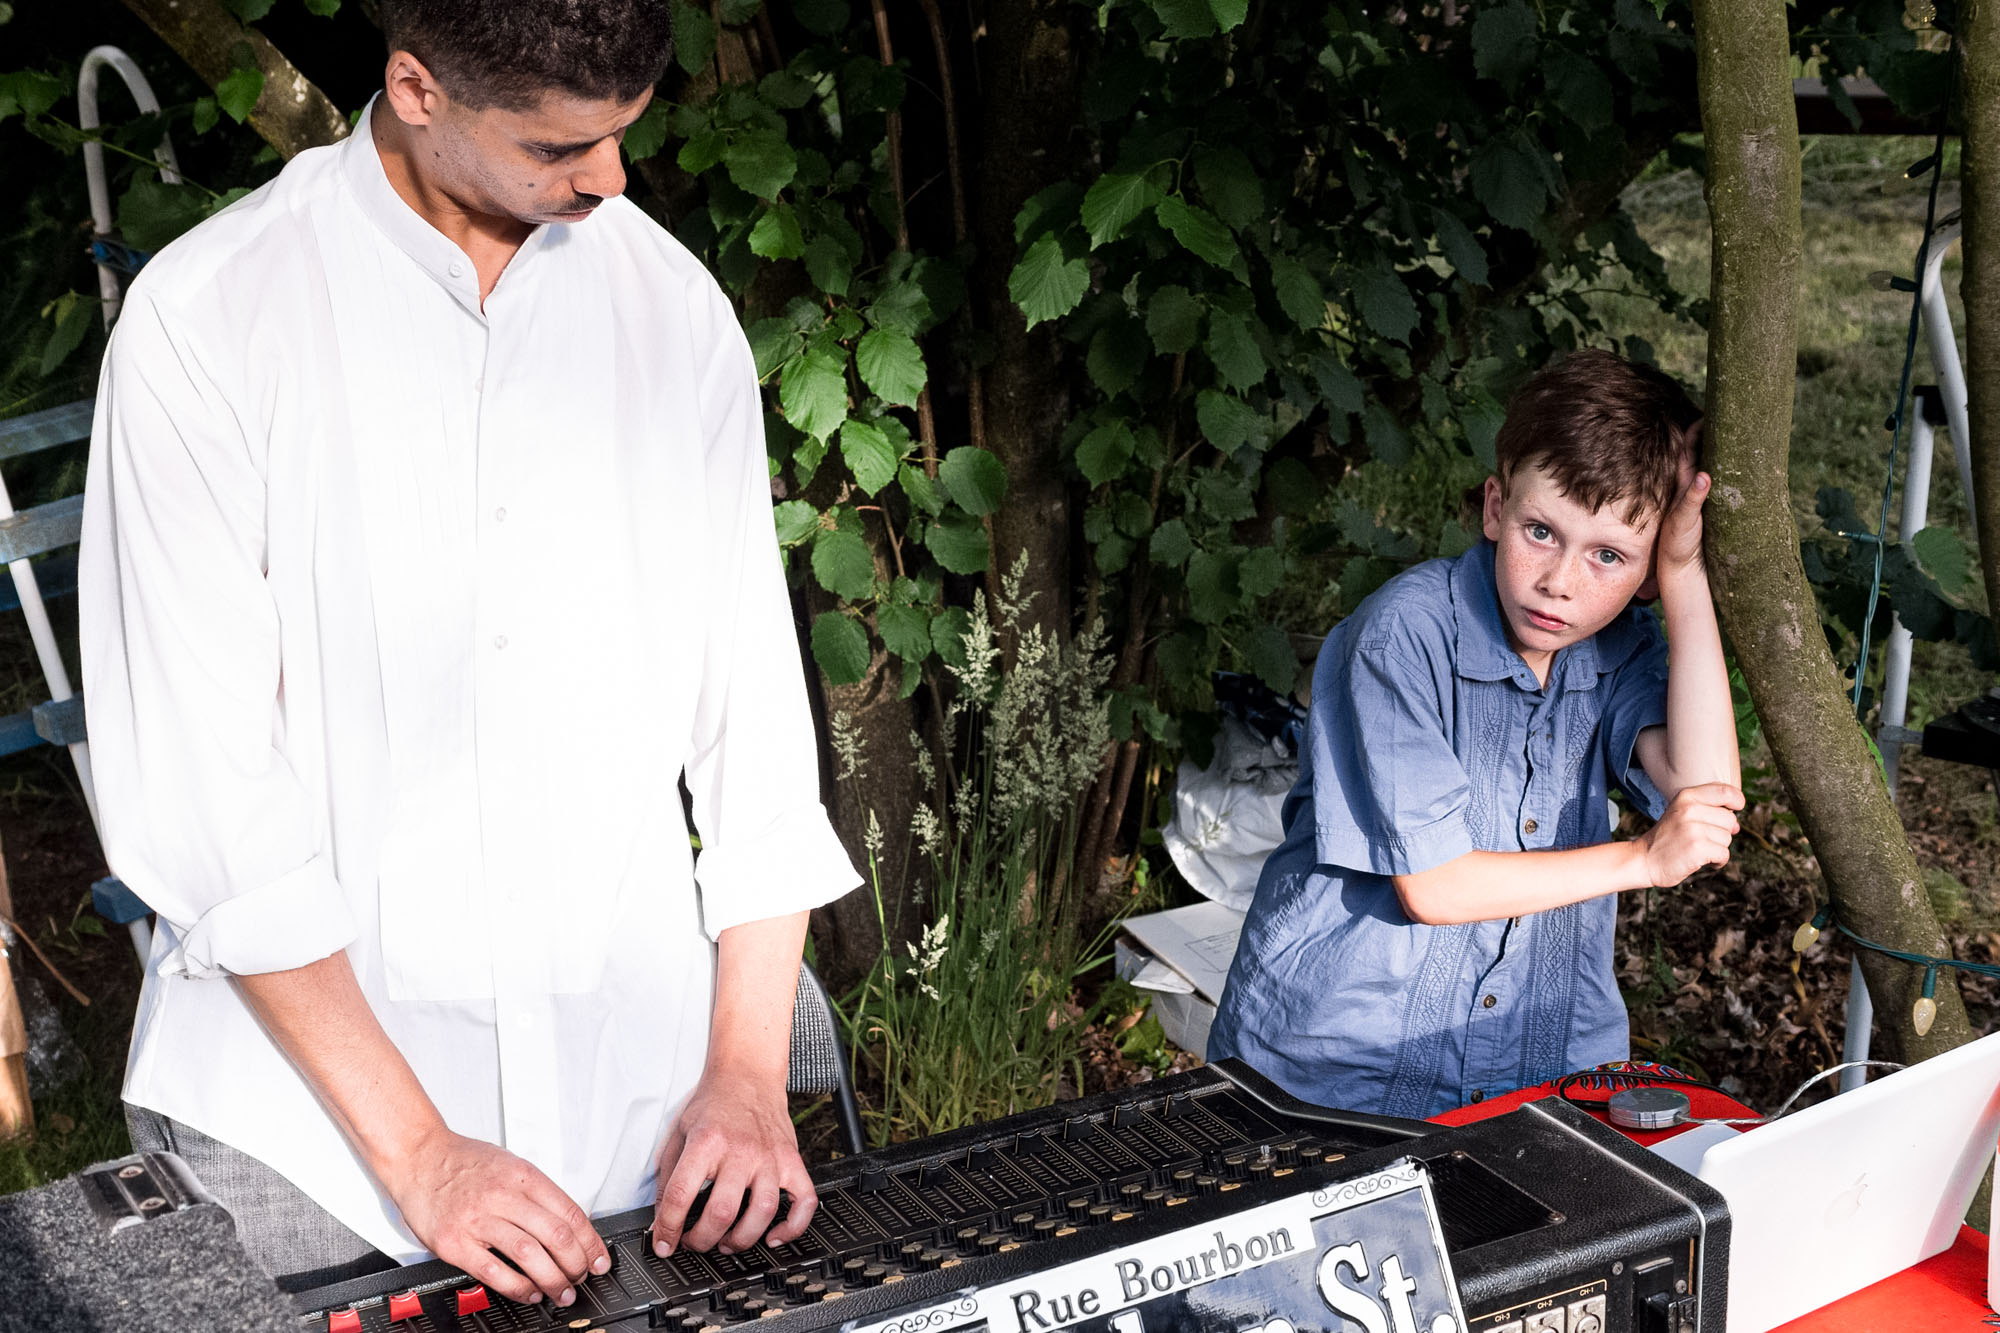 a young boy leans on a tree and eyes the camera as his dad adjusts the levels on a mixing board